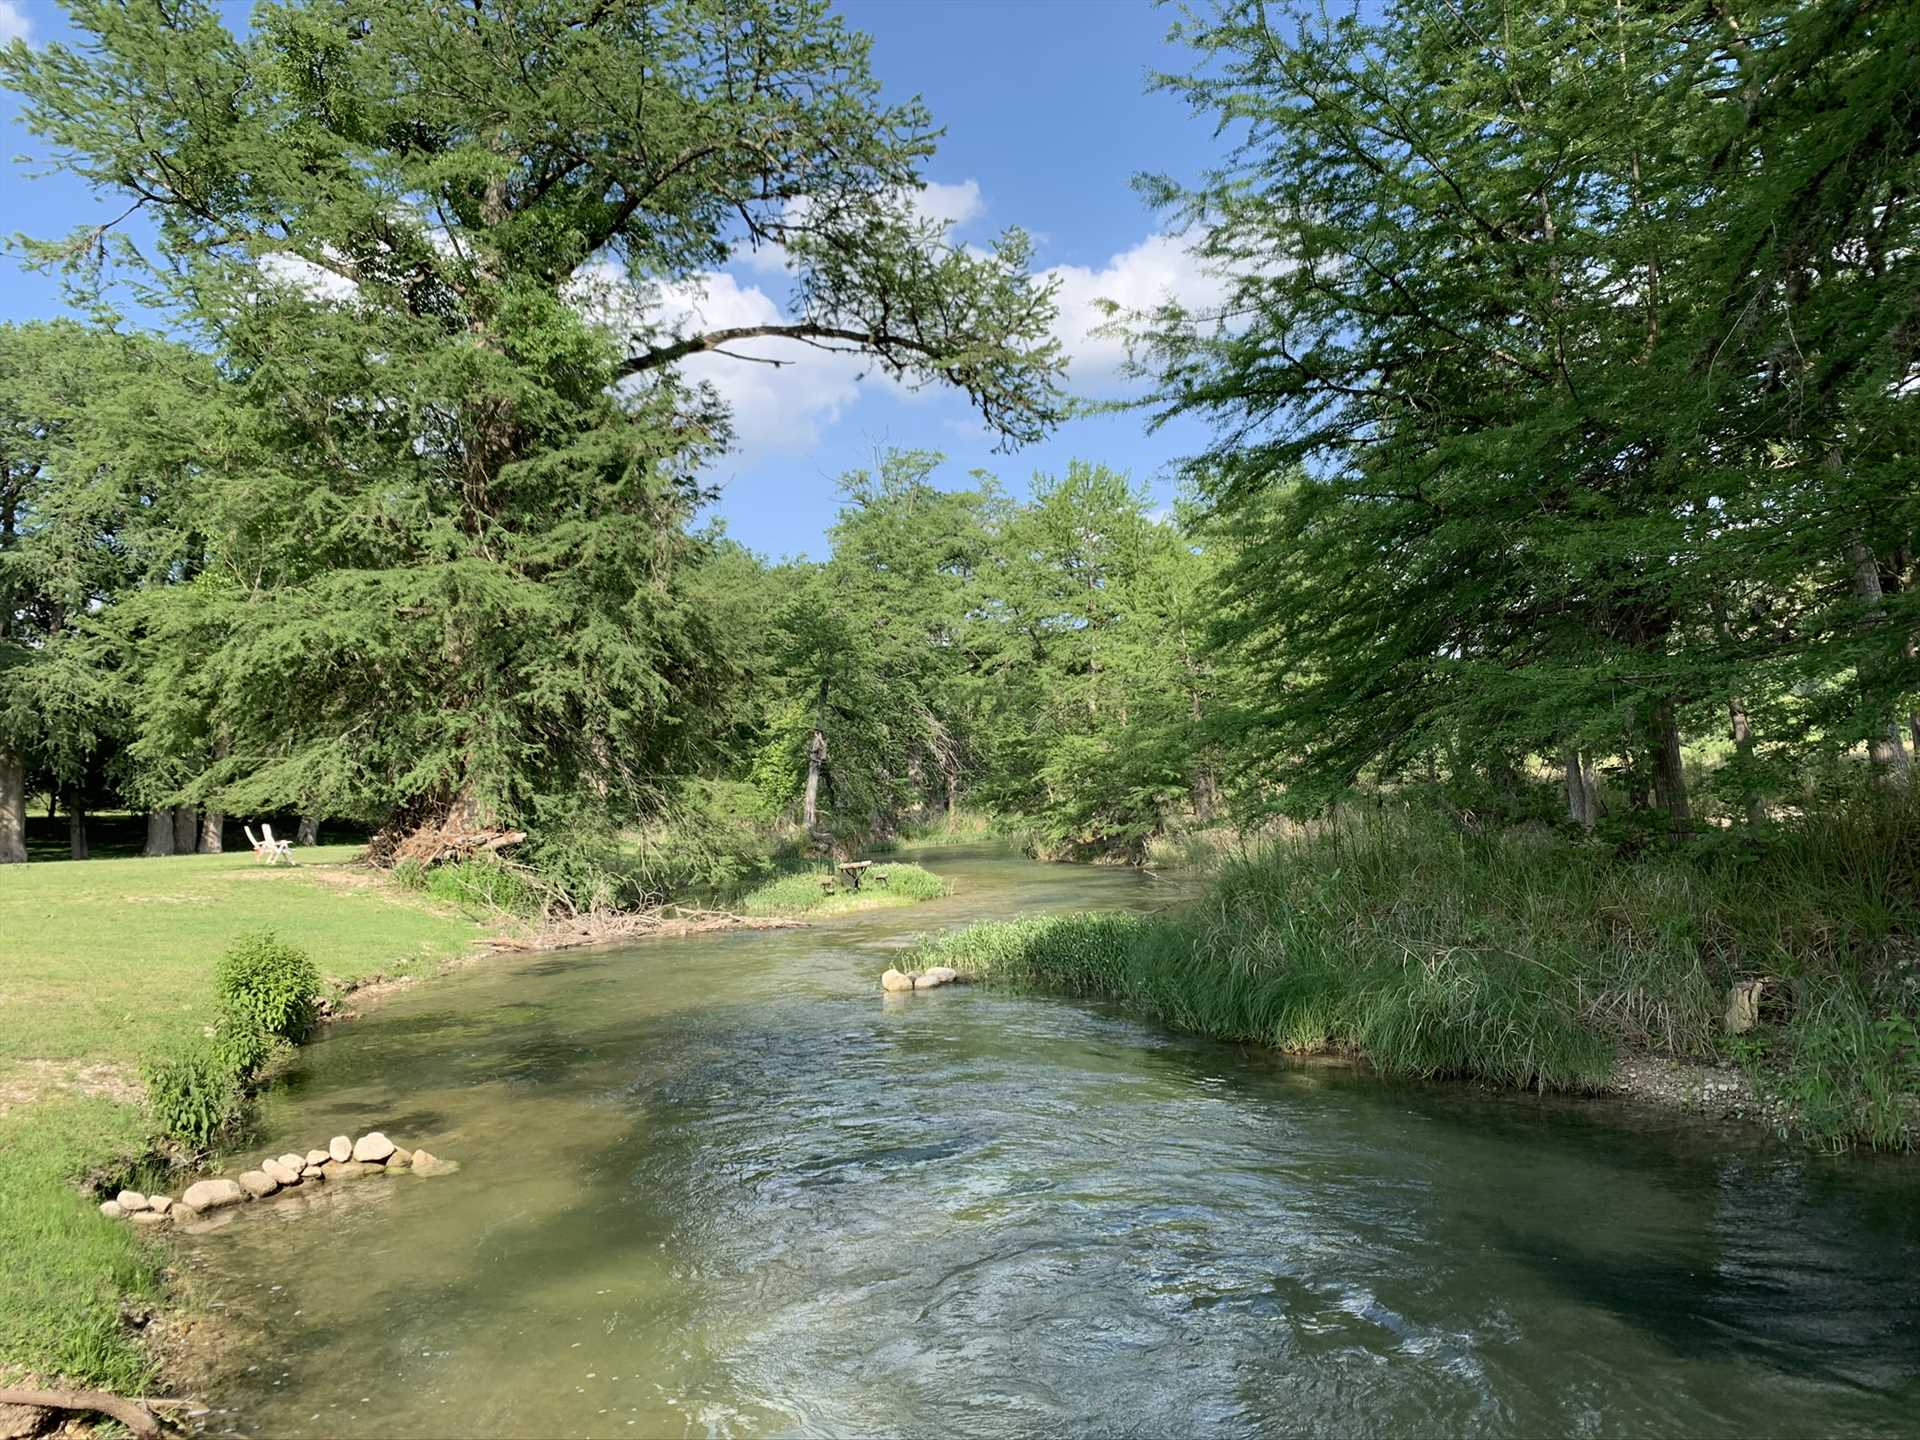 Tubing, swimming, and fishing are all available to you here, with access to the Guadalupe River close by!